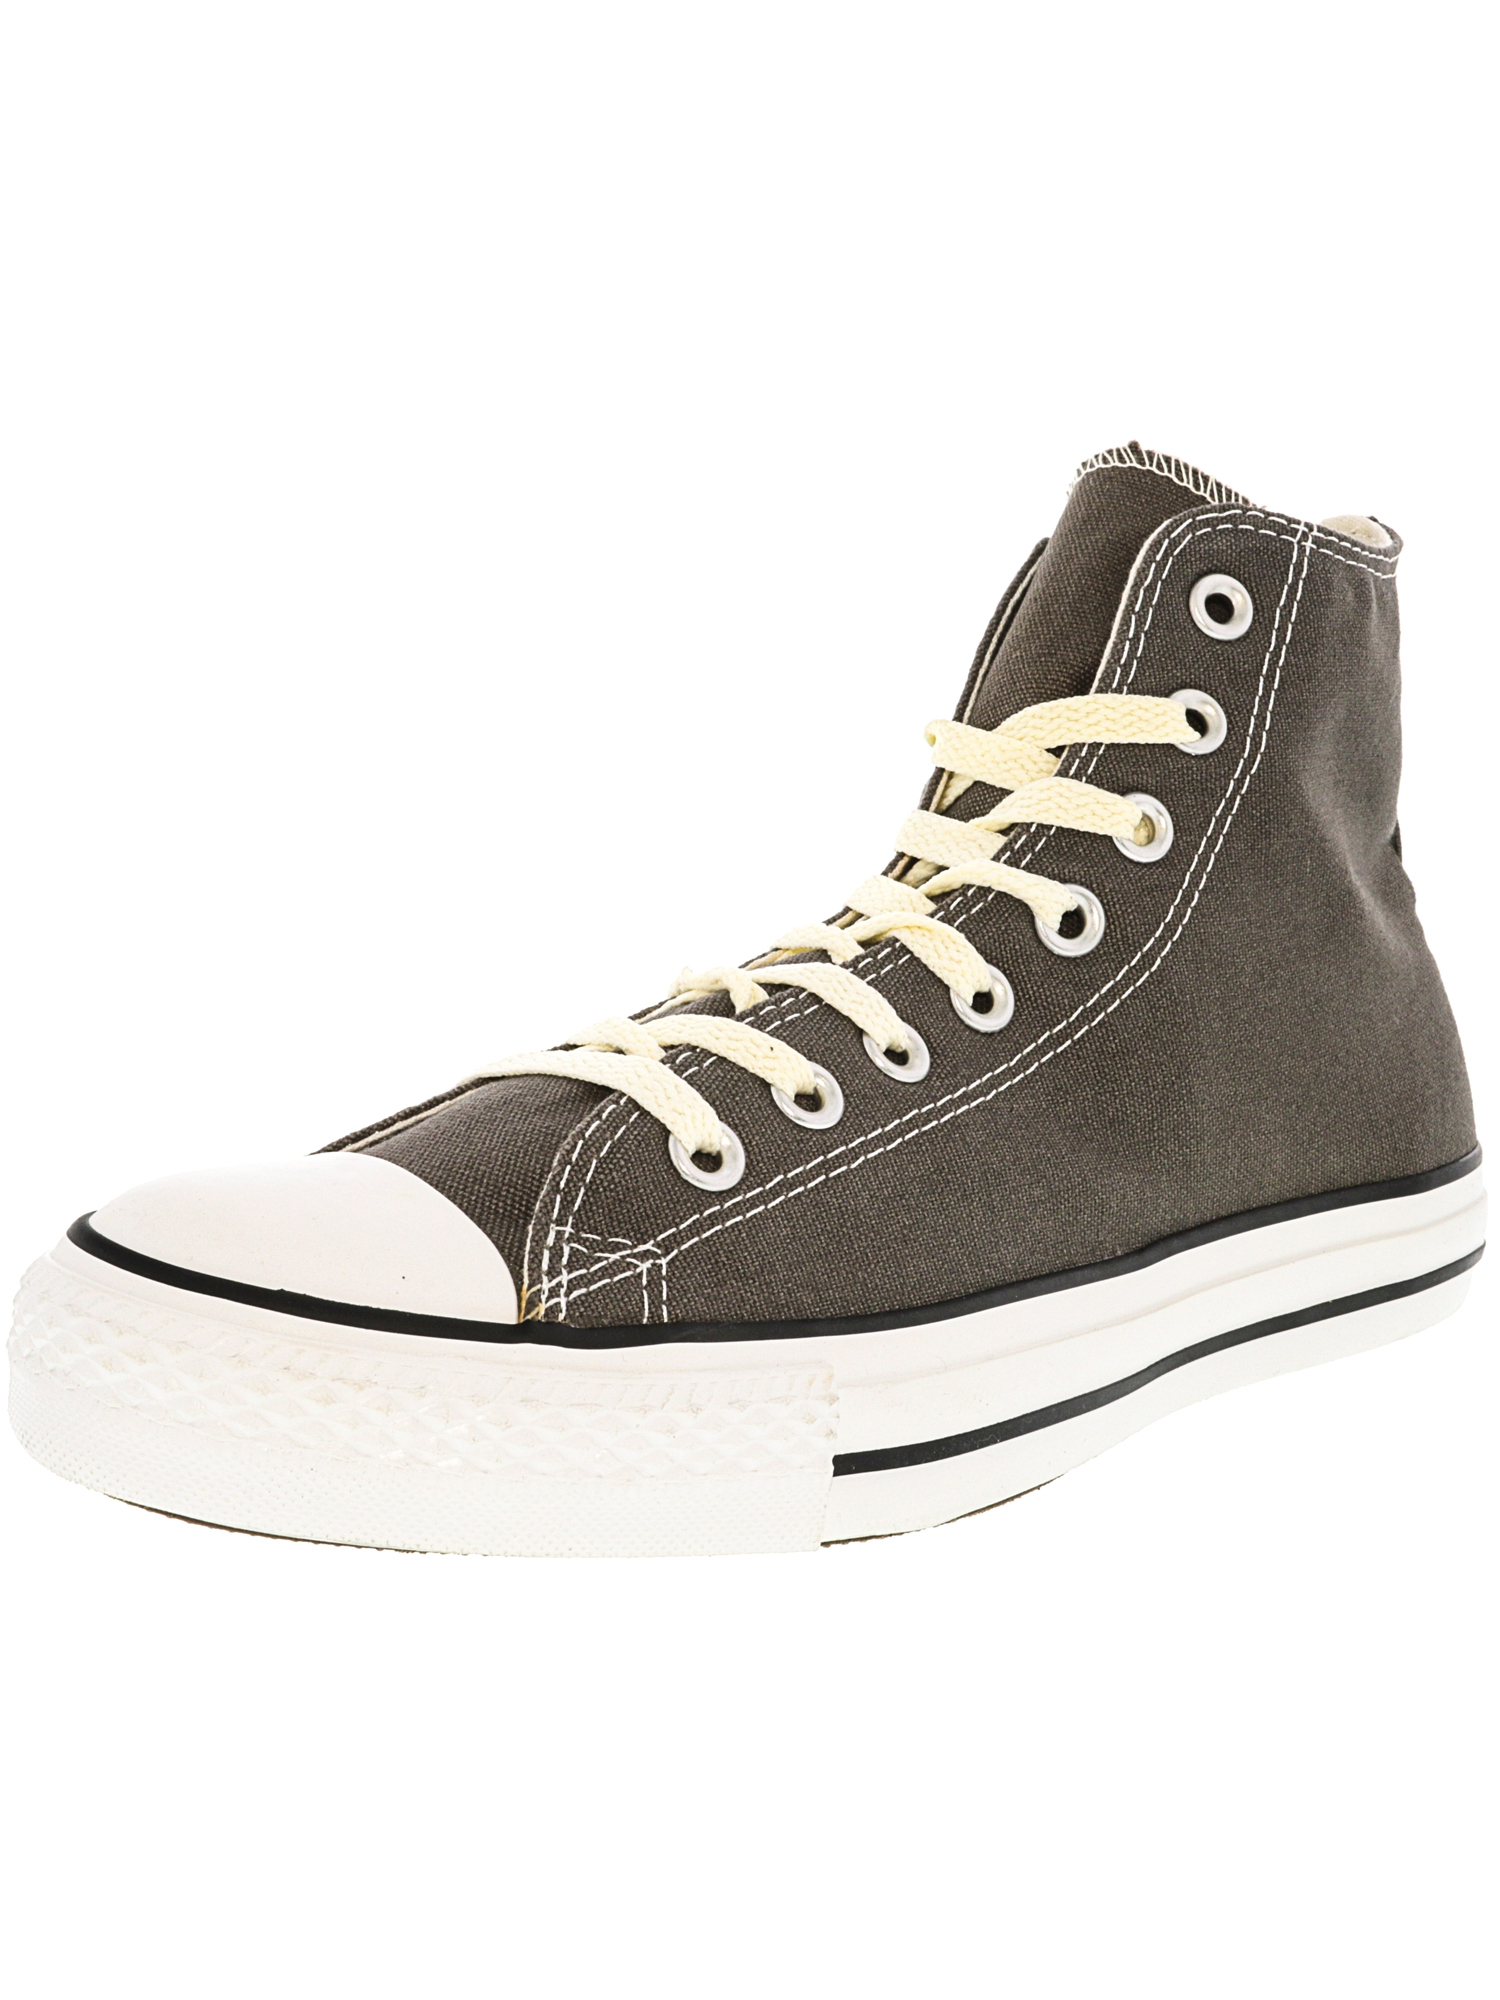 Converse All Star Seasonal Hi Charcoal High-Top Fashion Sneaker 13.5M   11.5M by Converse